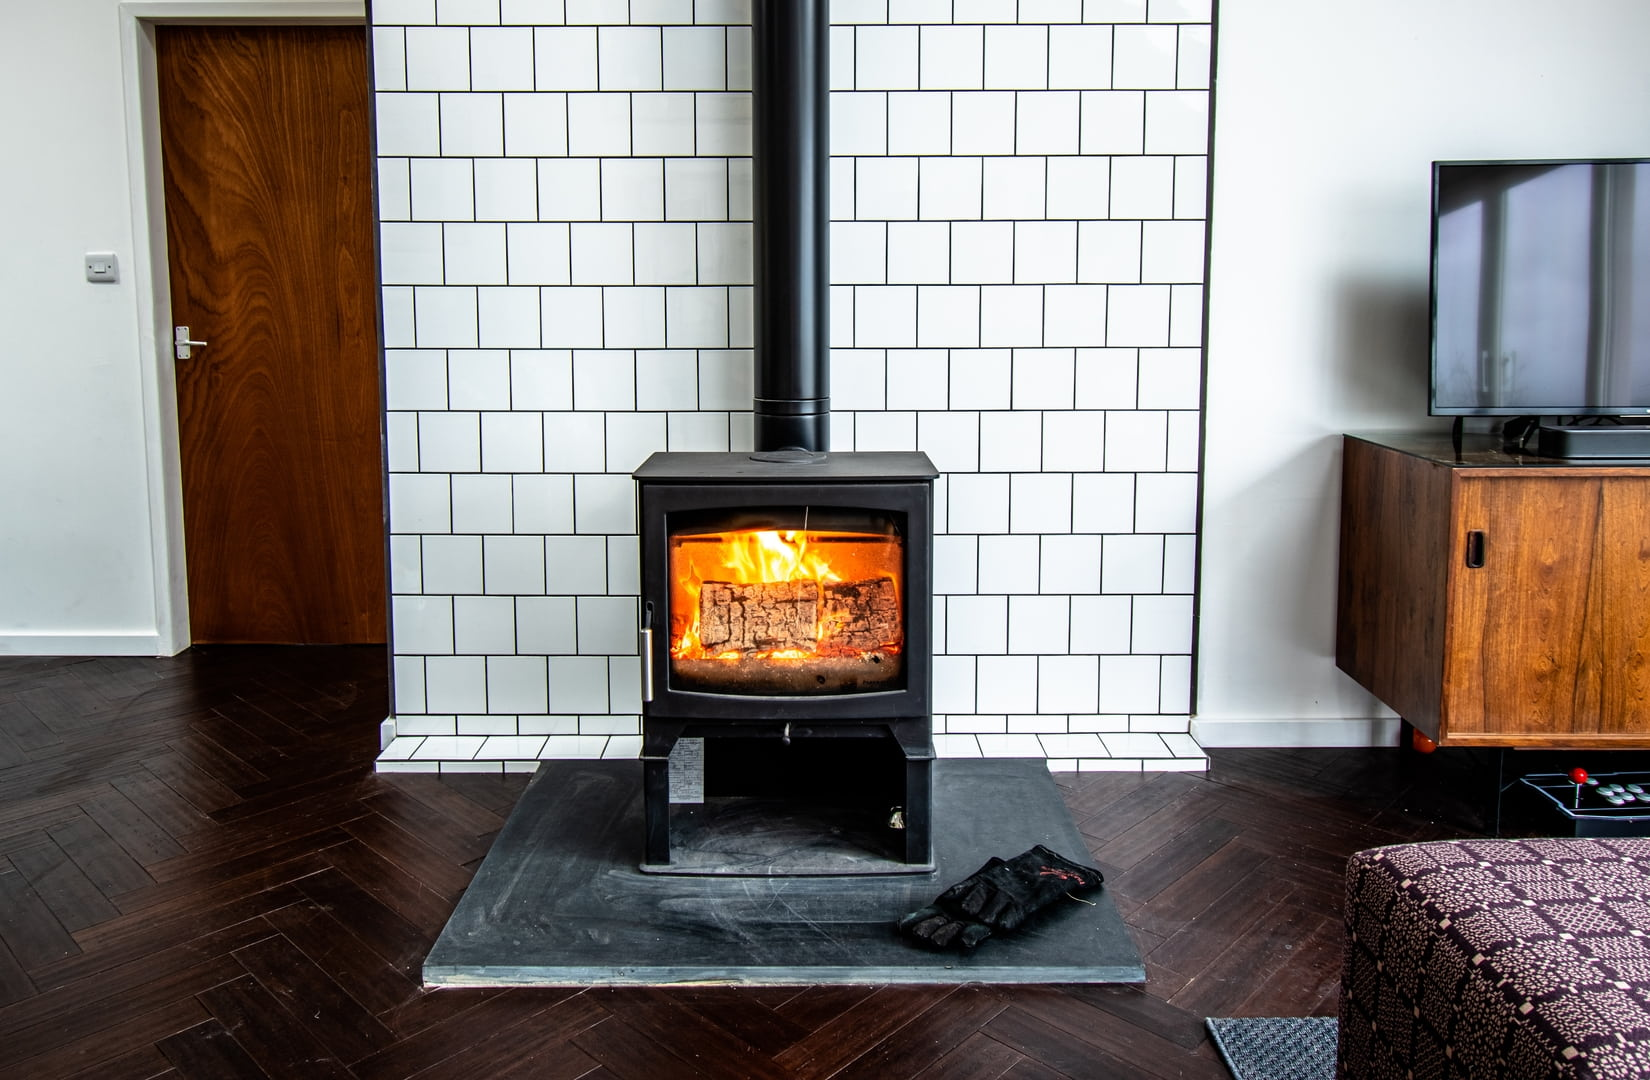 The living area is heated by a wood burner